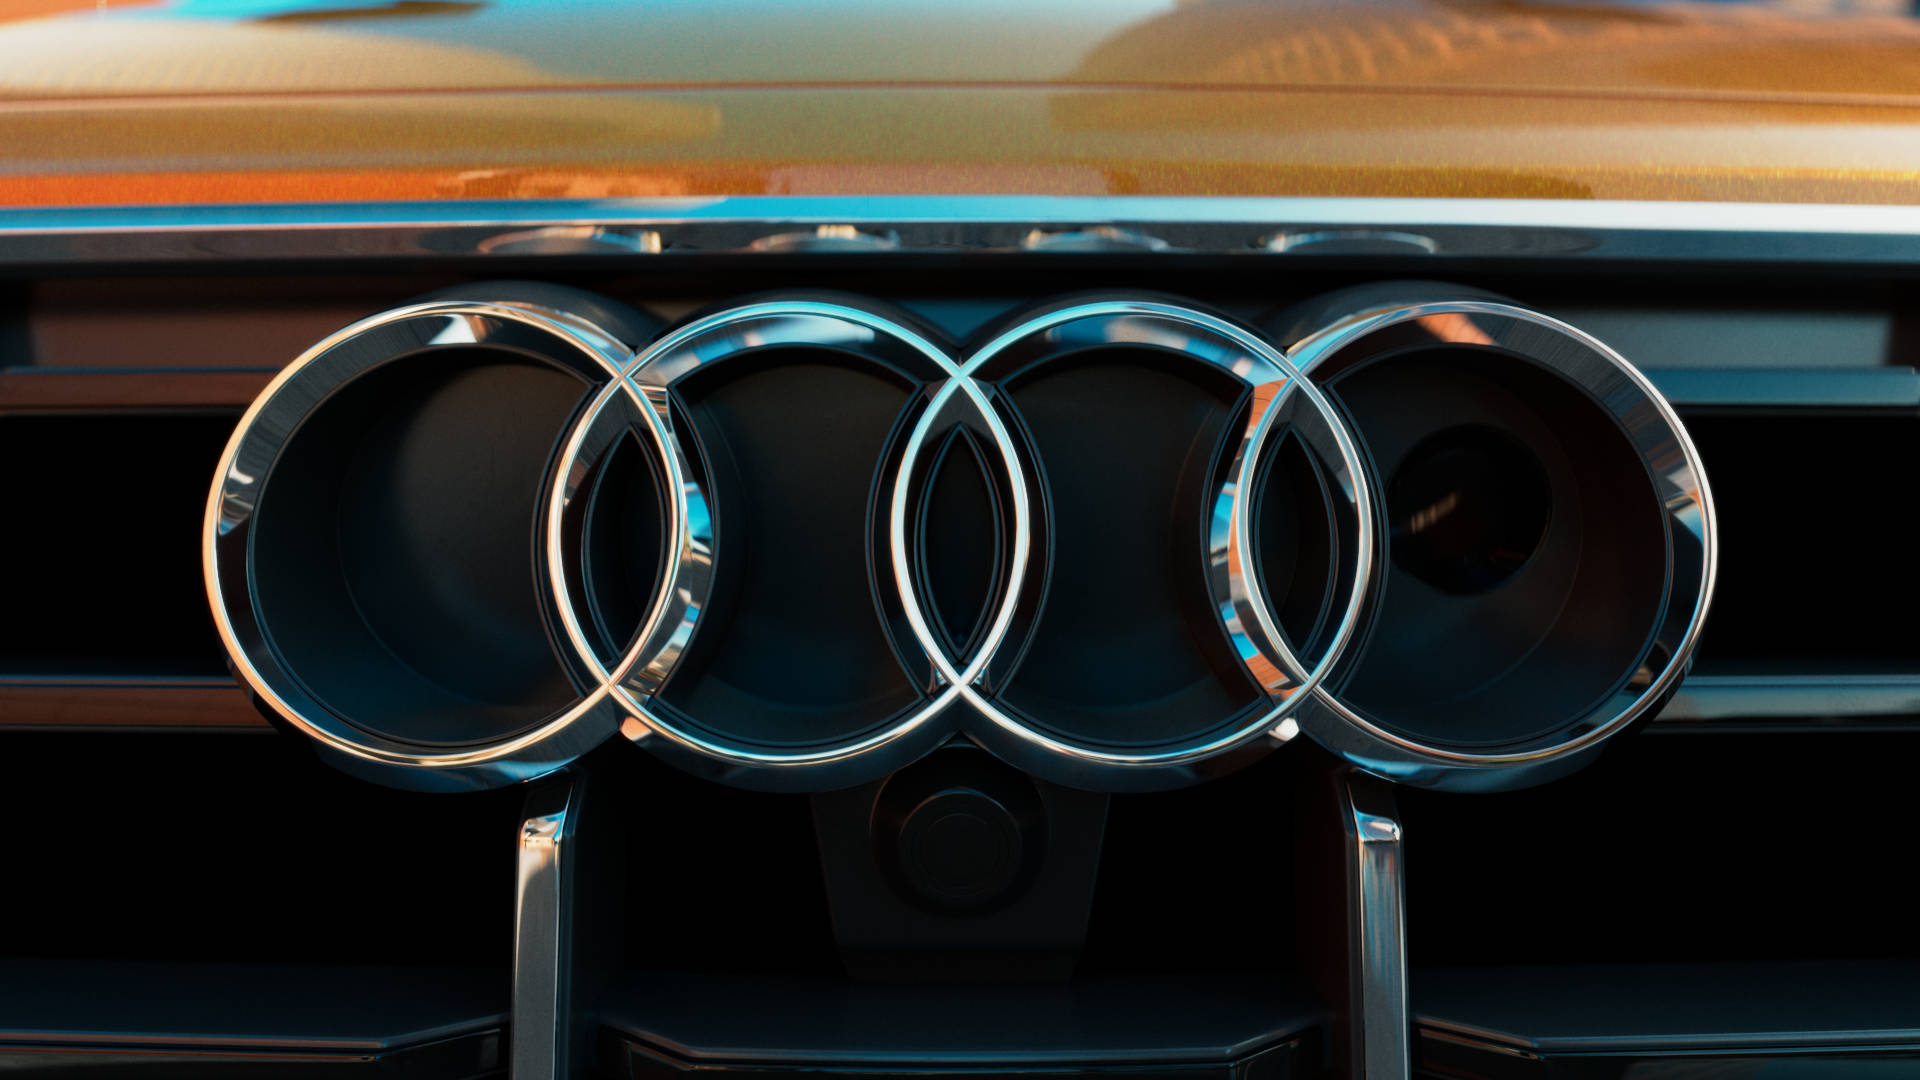 Audi Q8 front grill logo.